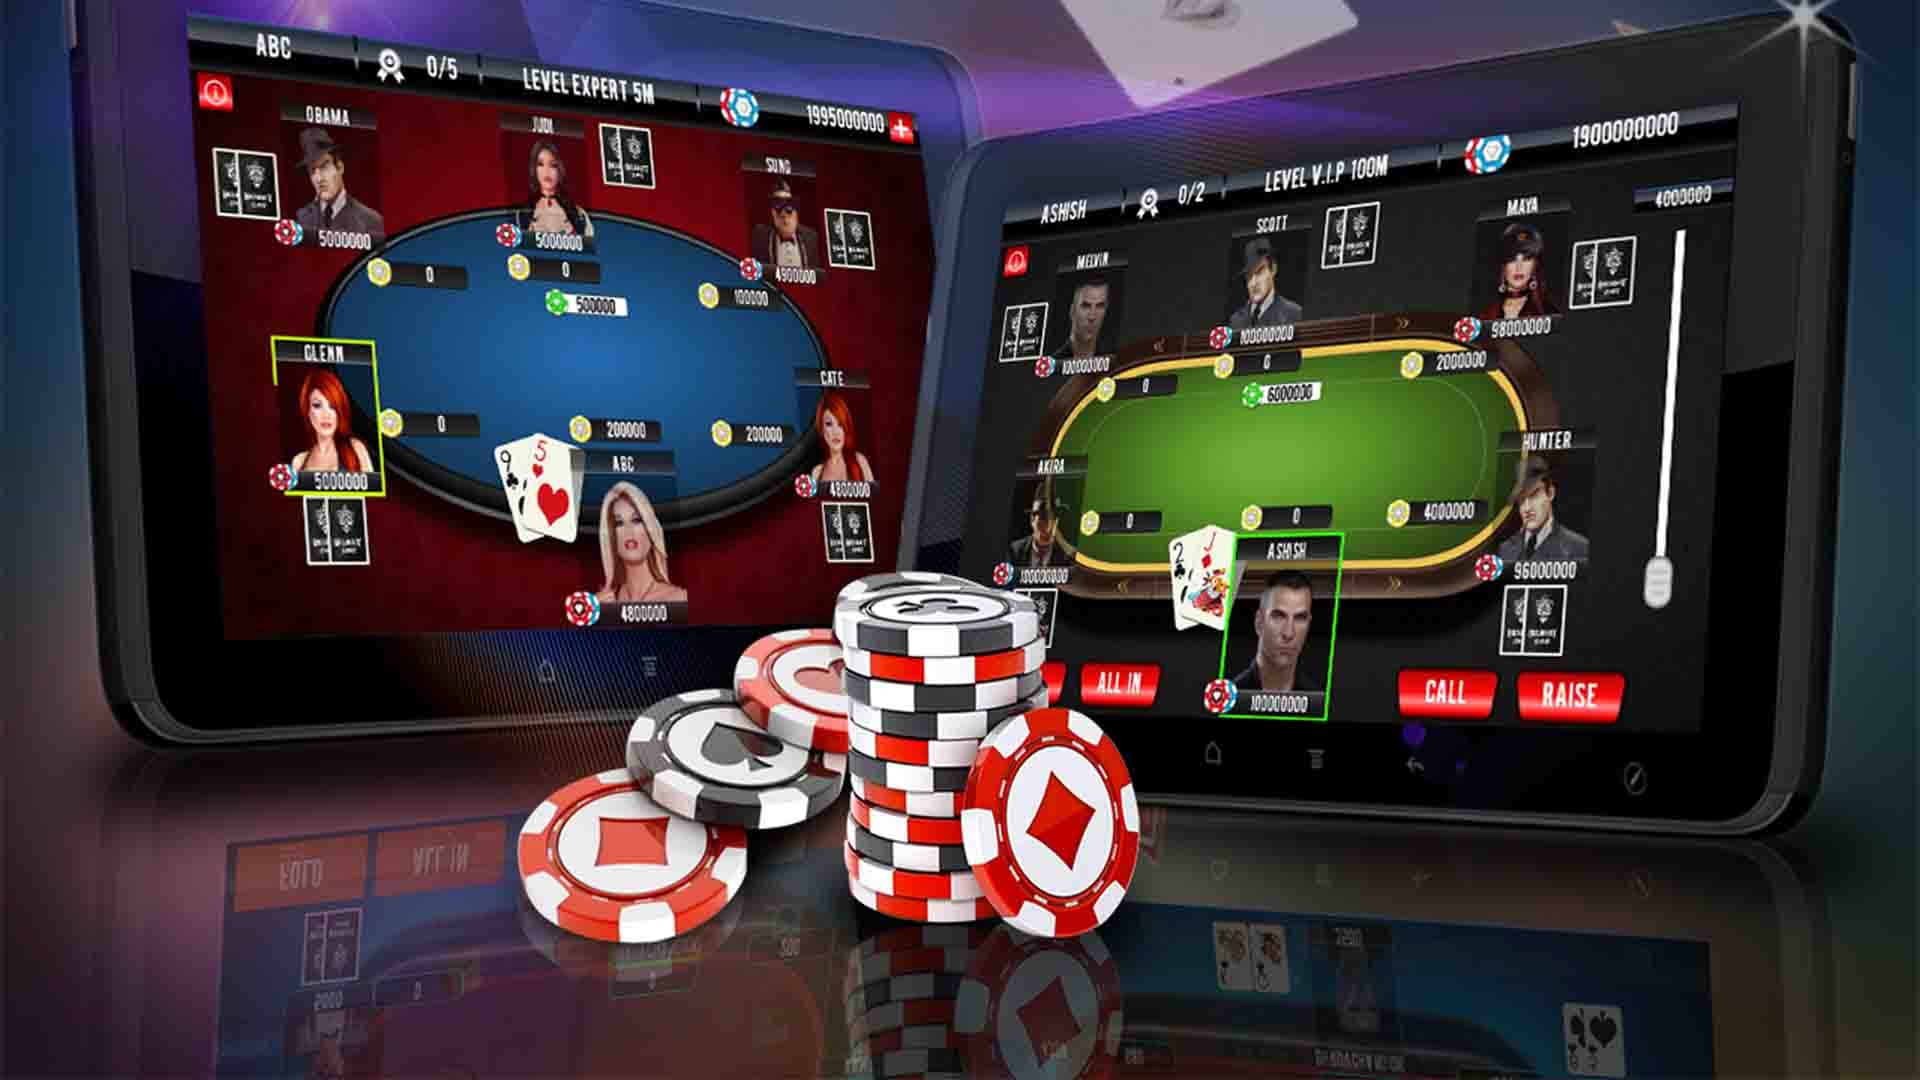 How to Play Poker Online: Tips For Beginners